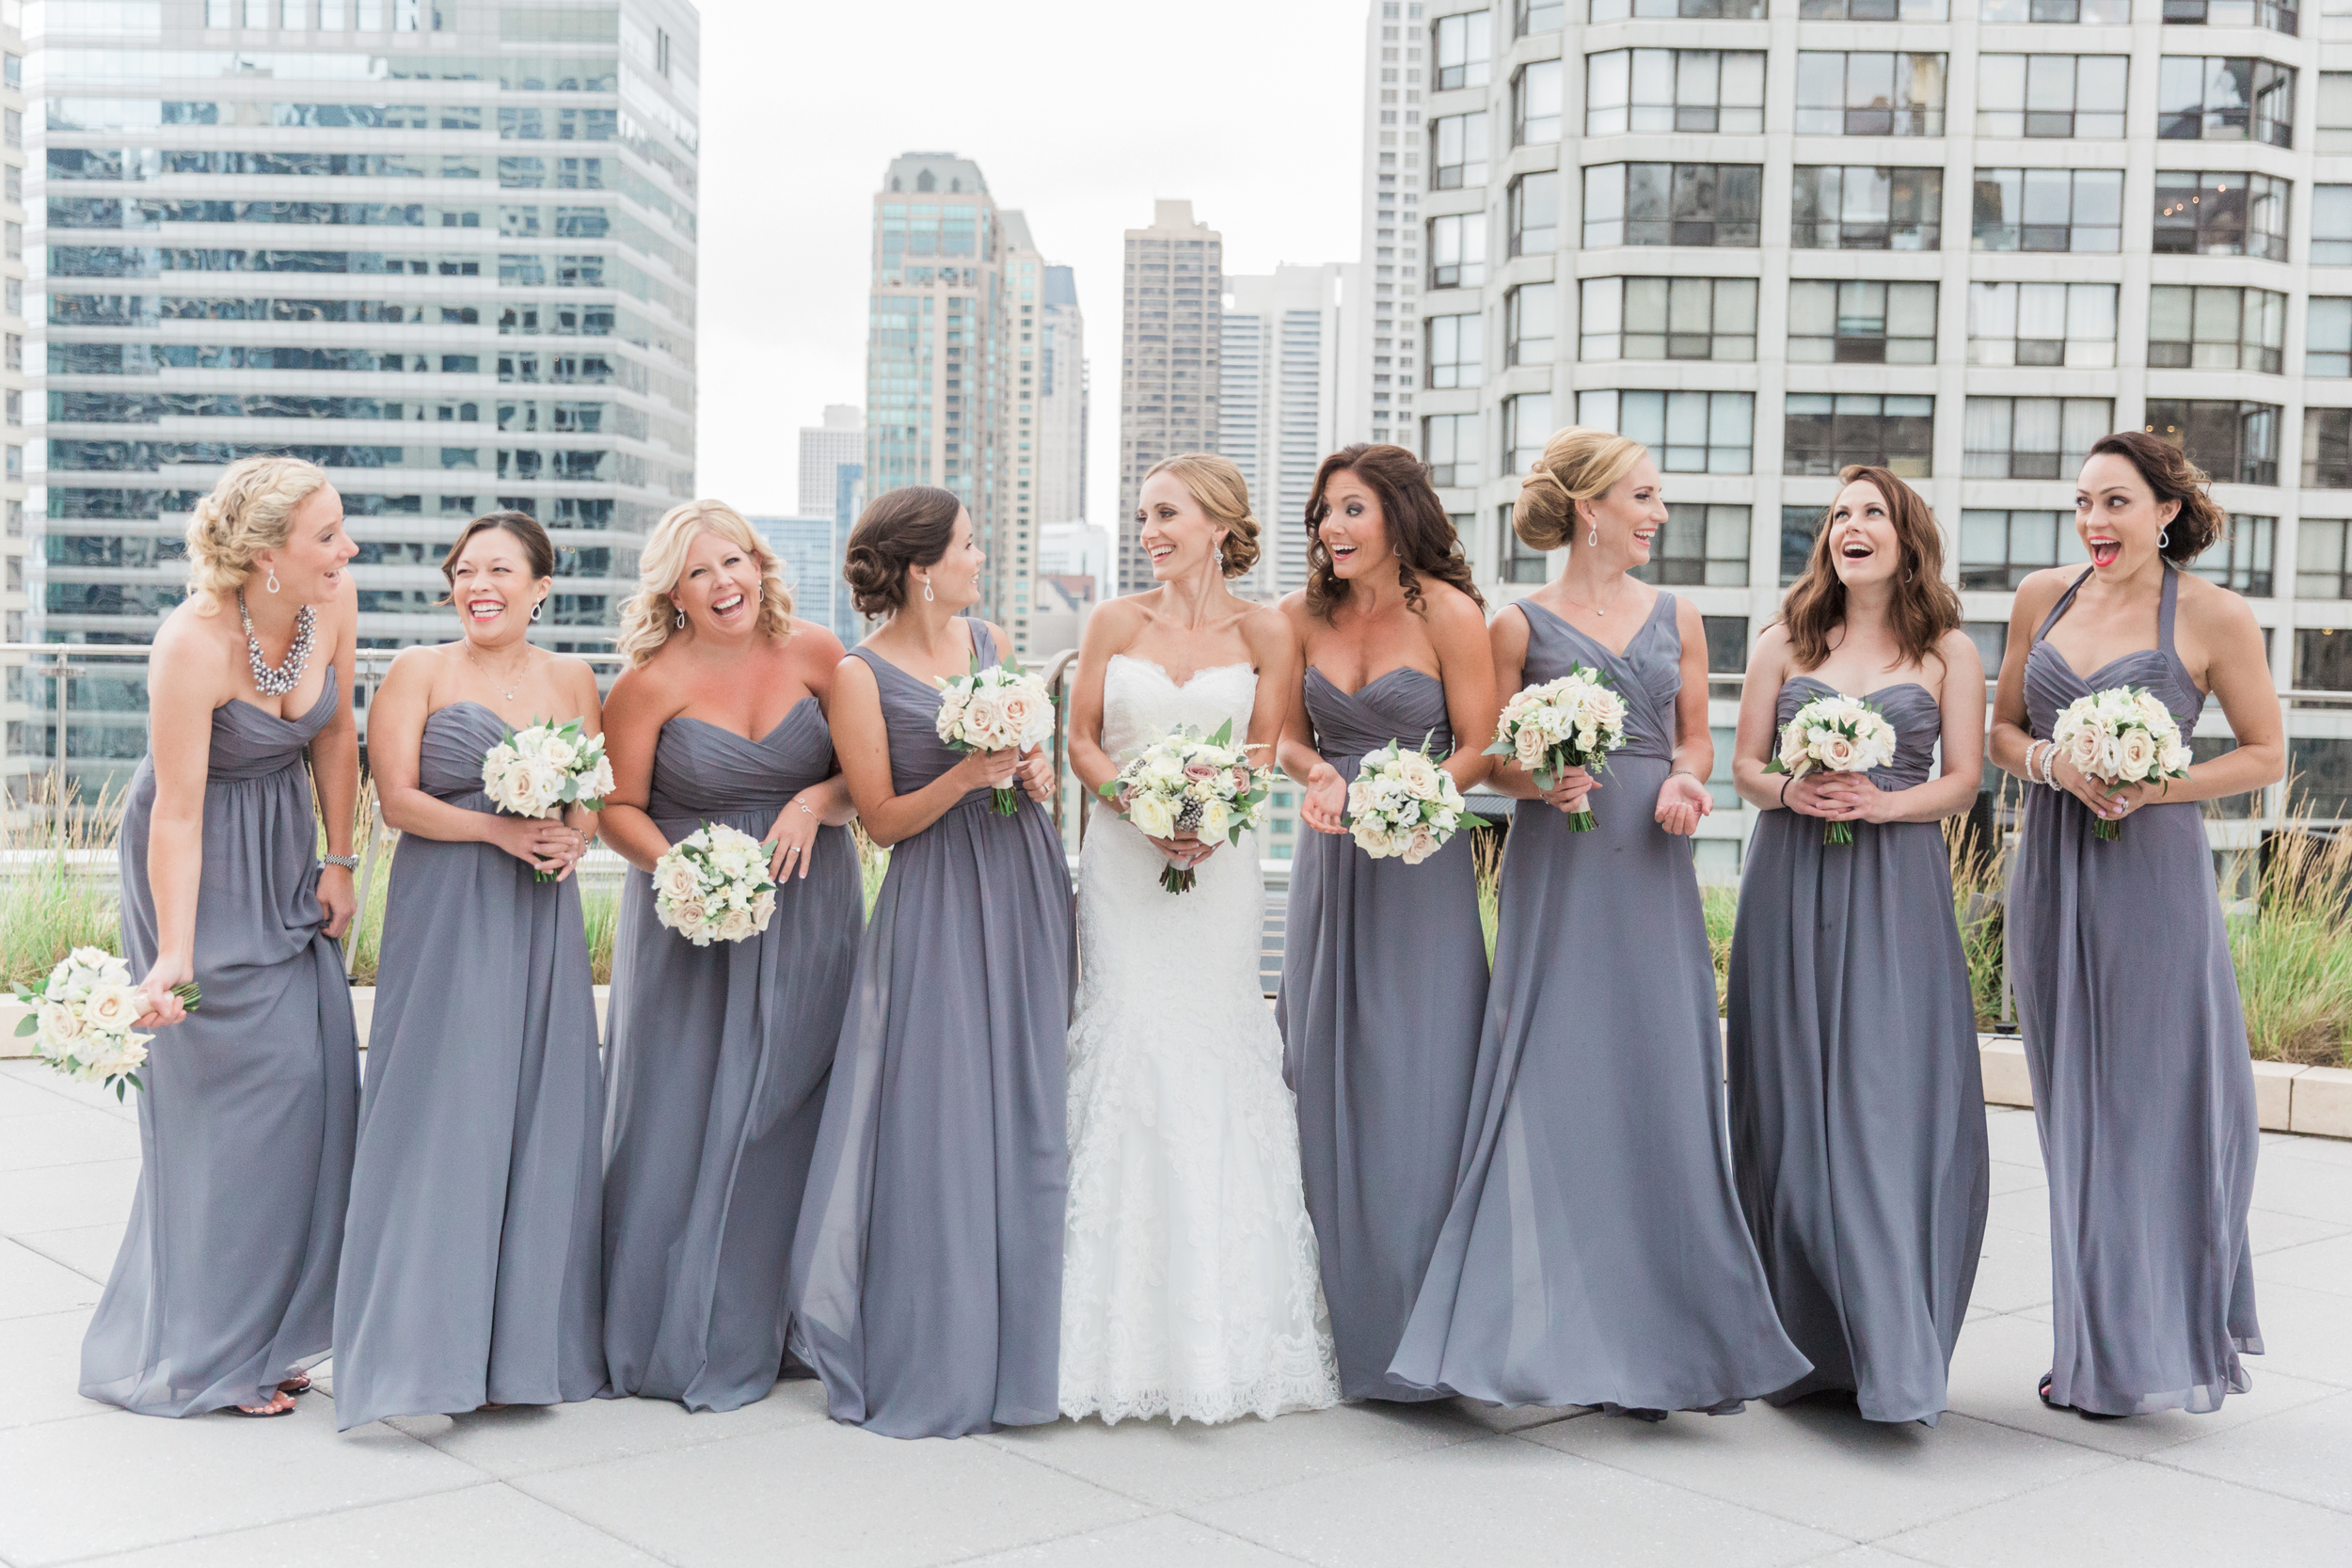 Bonphotage Wedding Photography - Trump Hotel Chicago